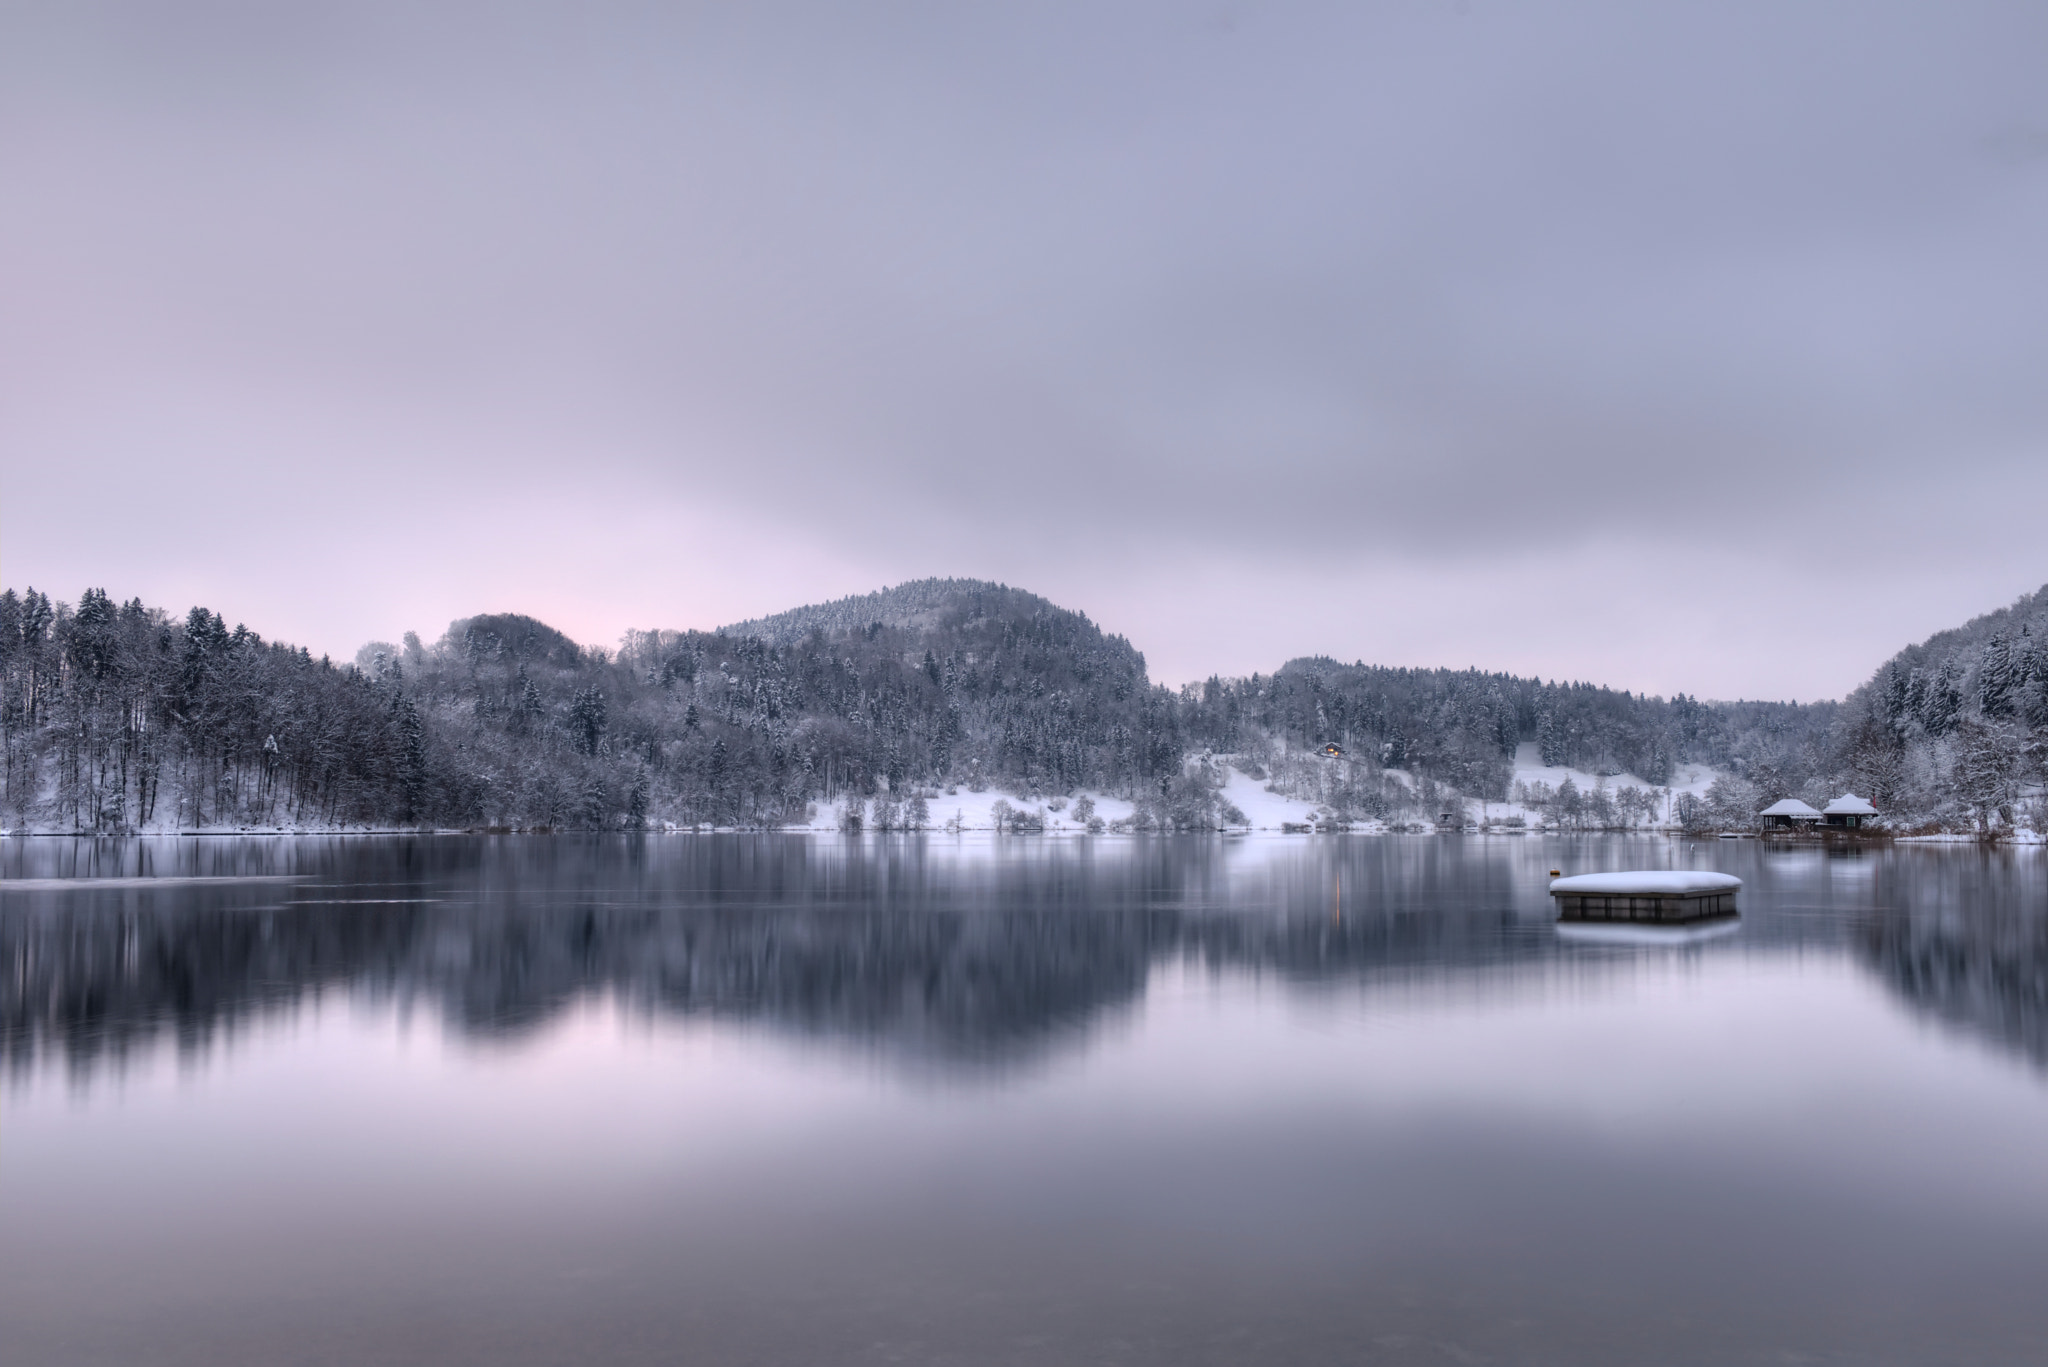 Photograph Blue Hour at Türlersee by Daniel J Mueller on 500px